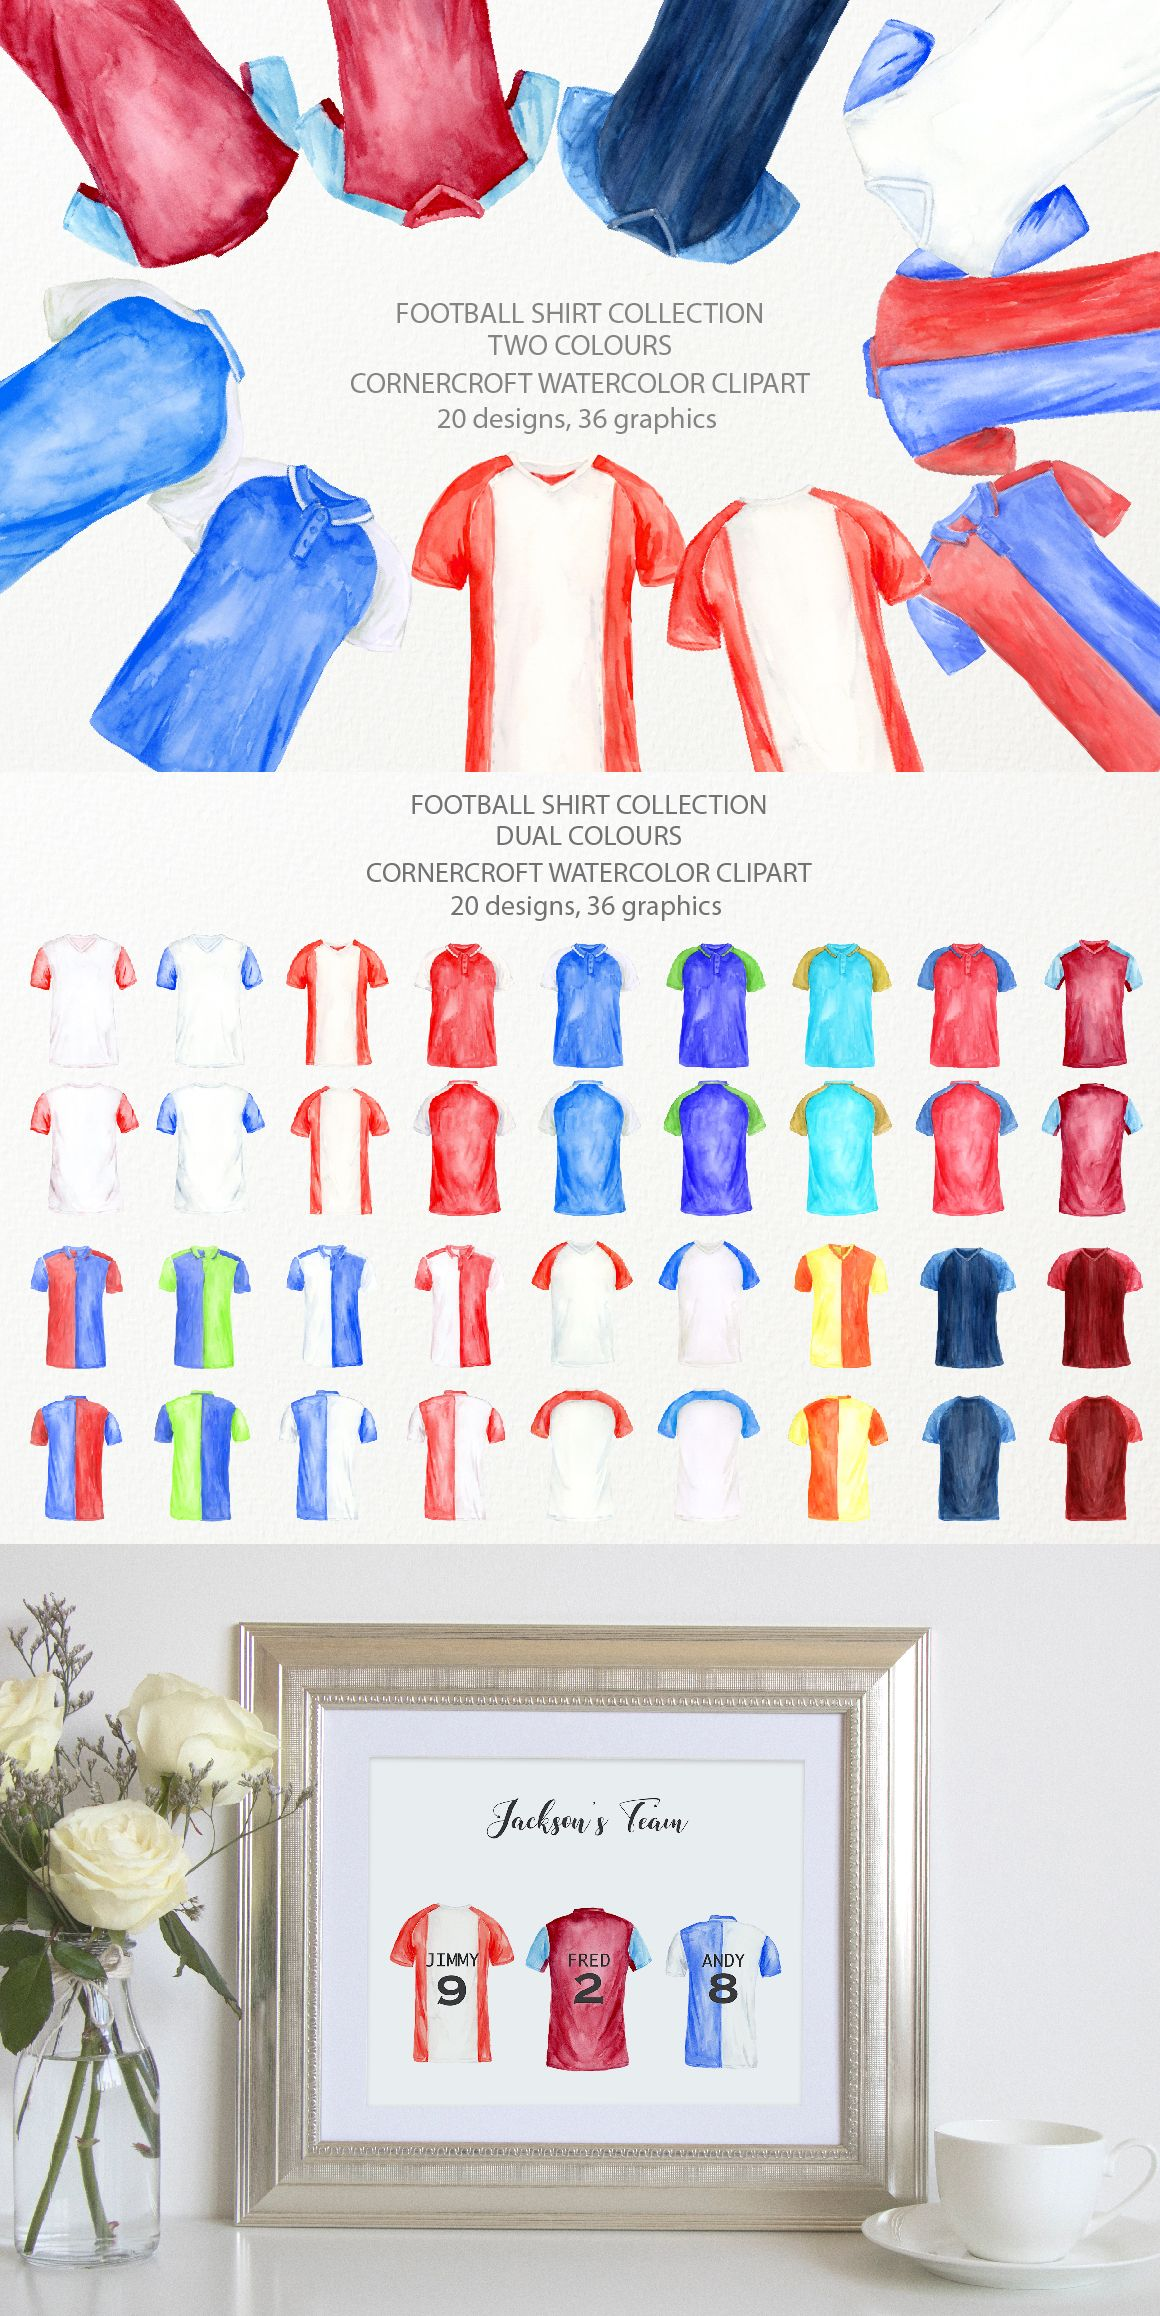 Watercolor Football Shirts In Two Colors Soccer Shirt